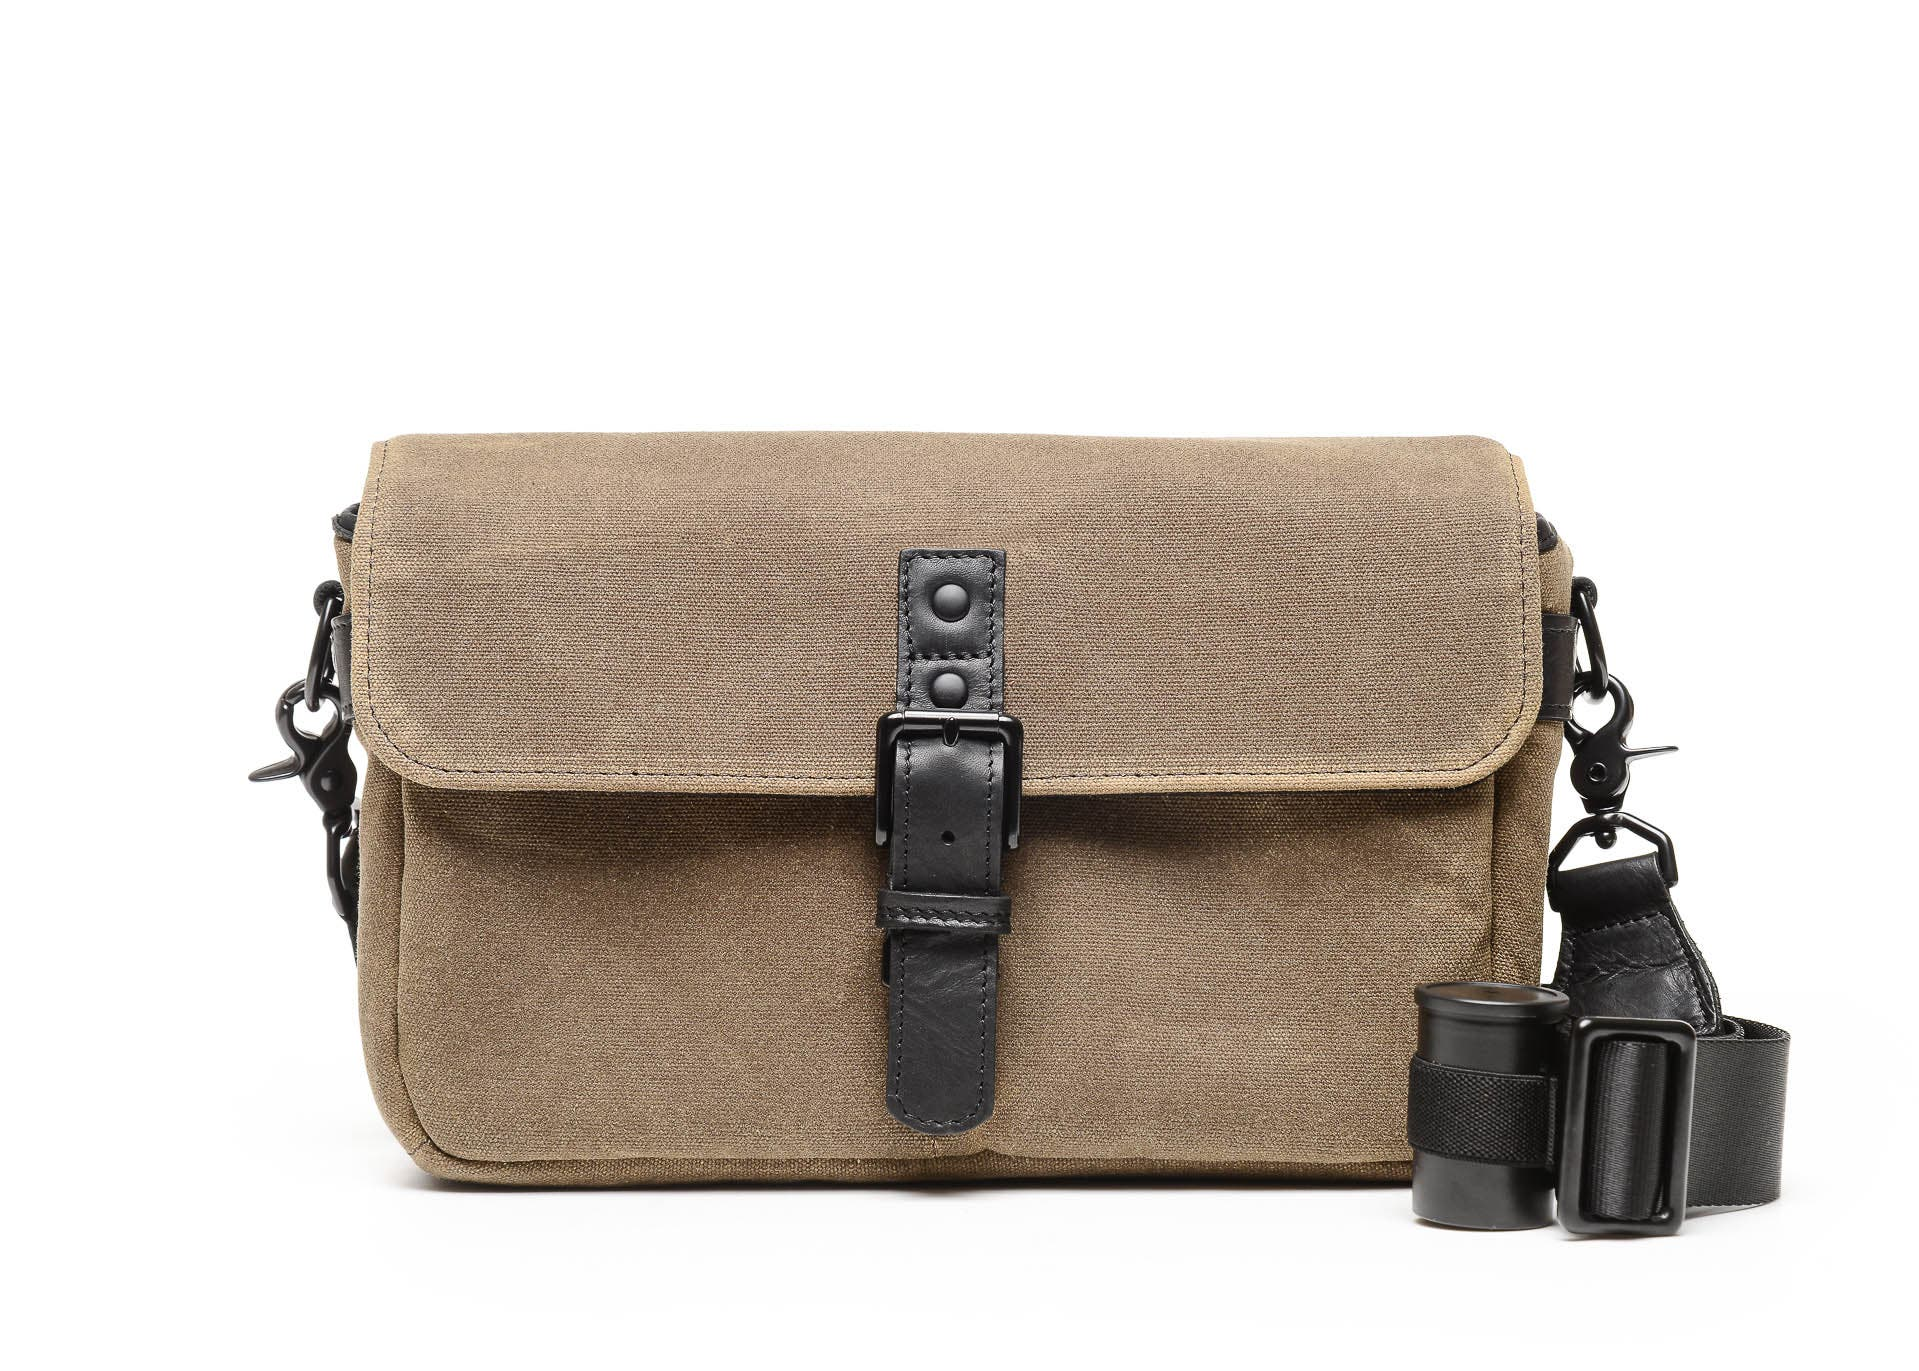 ONA and Japan Camera Hunter Collaborate on a Limited Edition Bowery Bag for Film Street Photographers